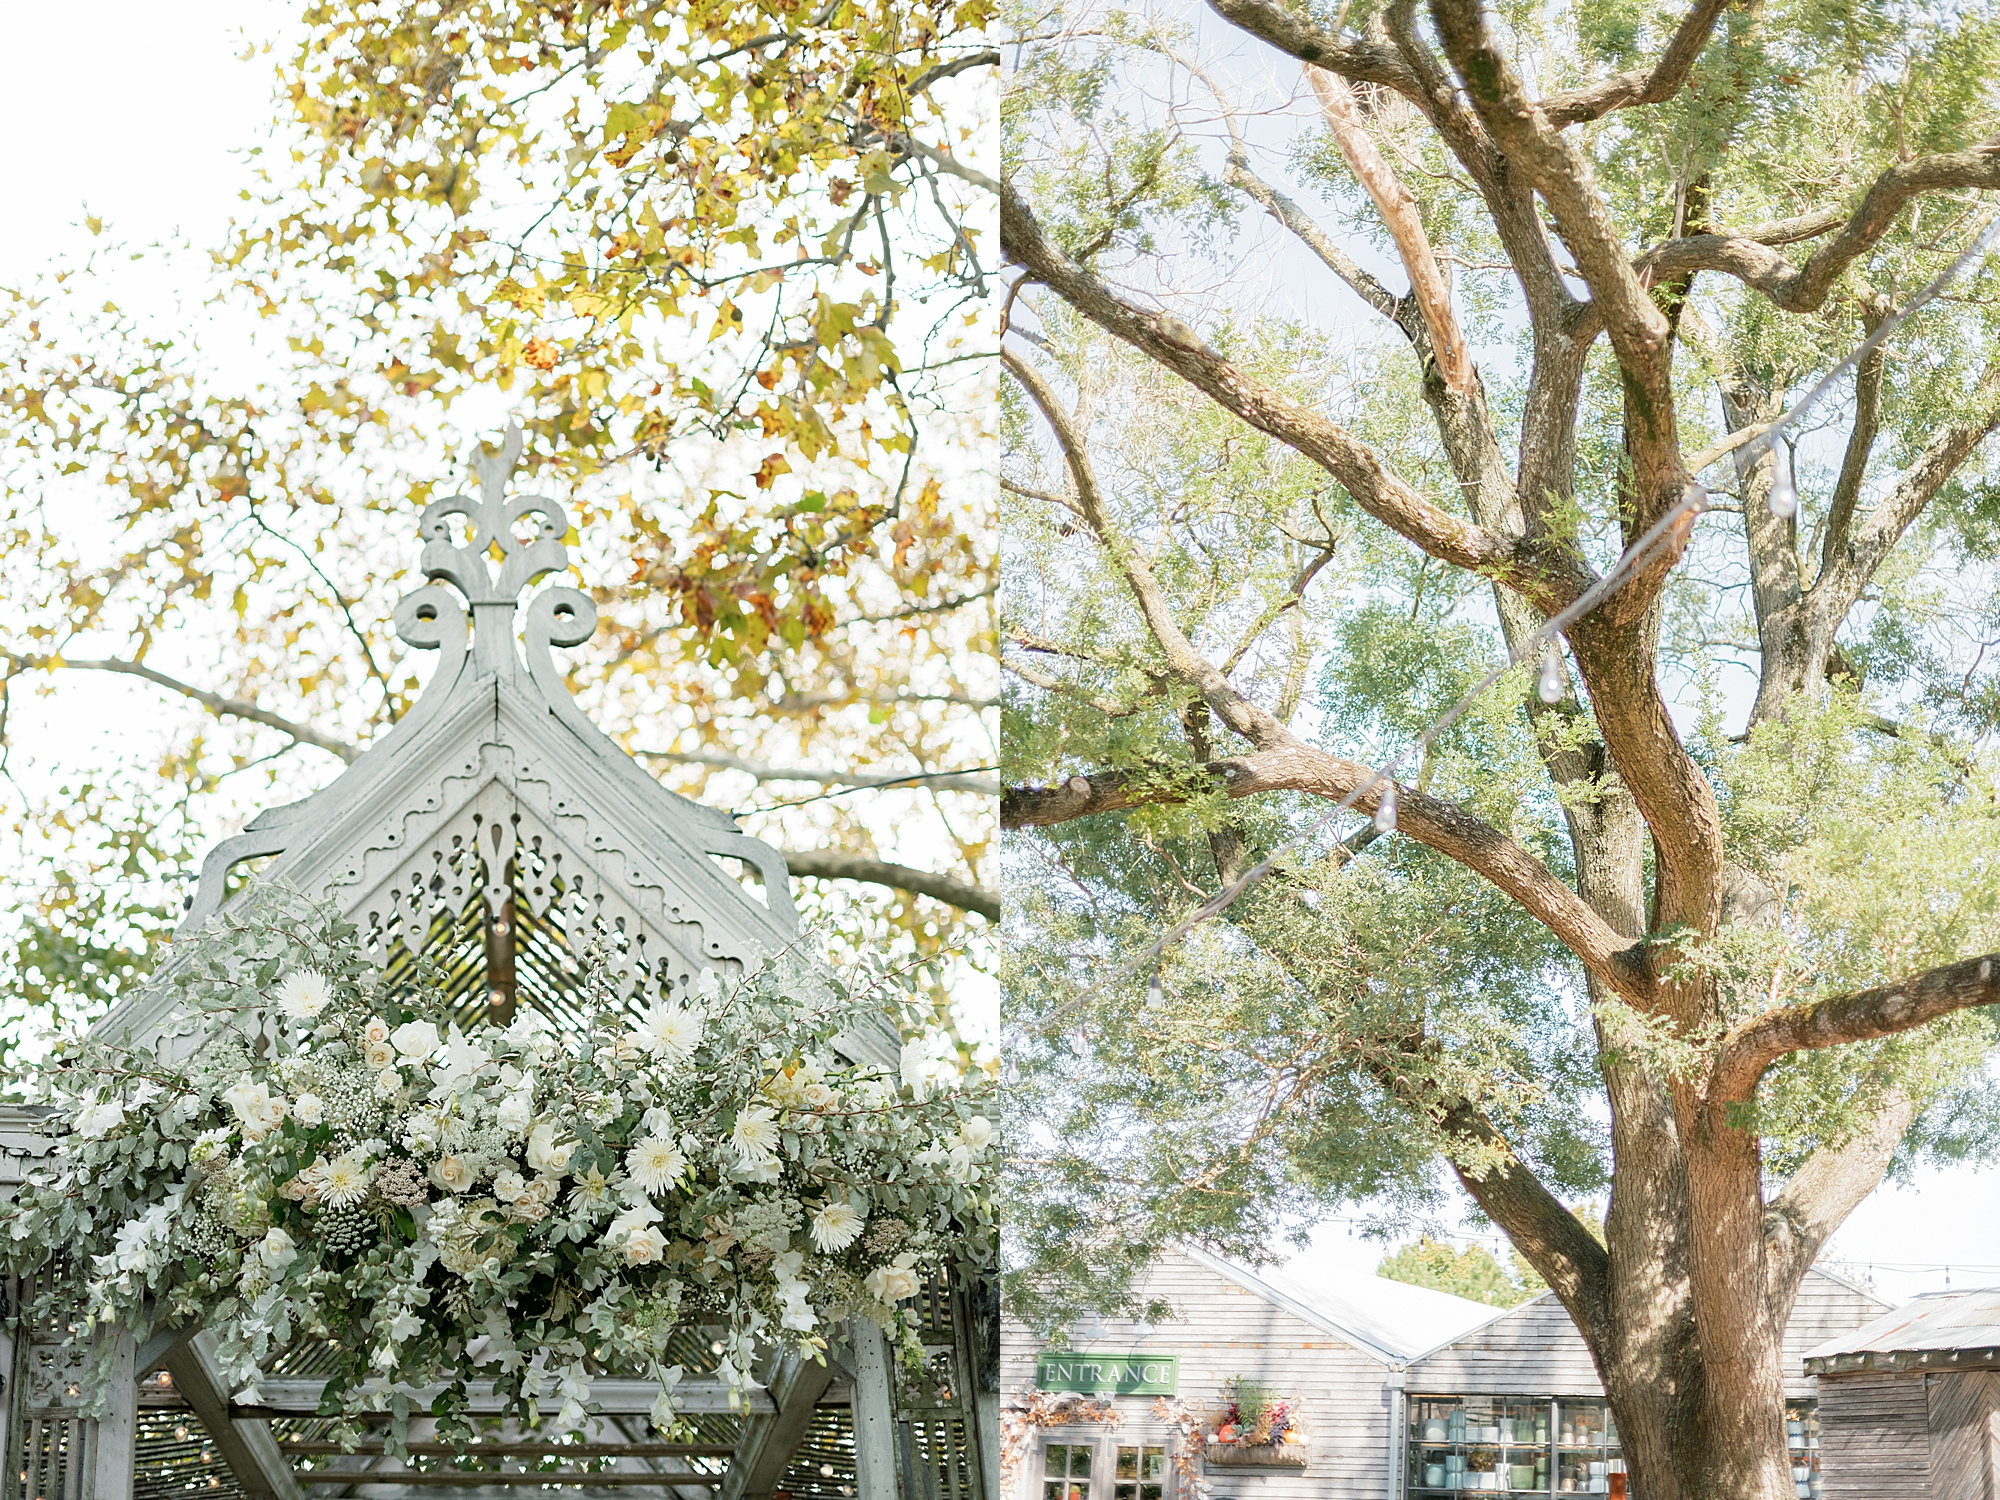 Terrain at Styers Wedding Photography by Magdalena Studios 0010